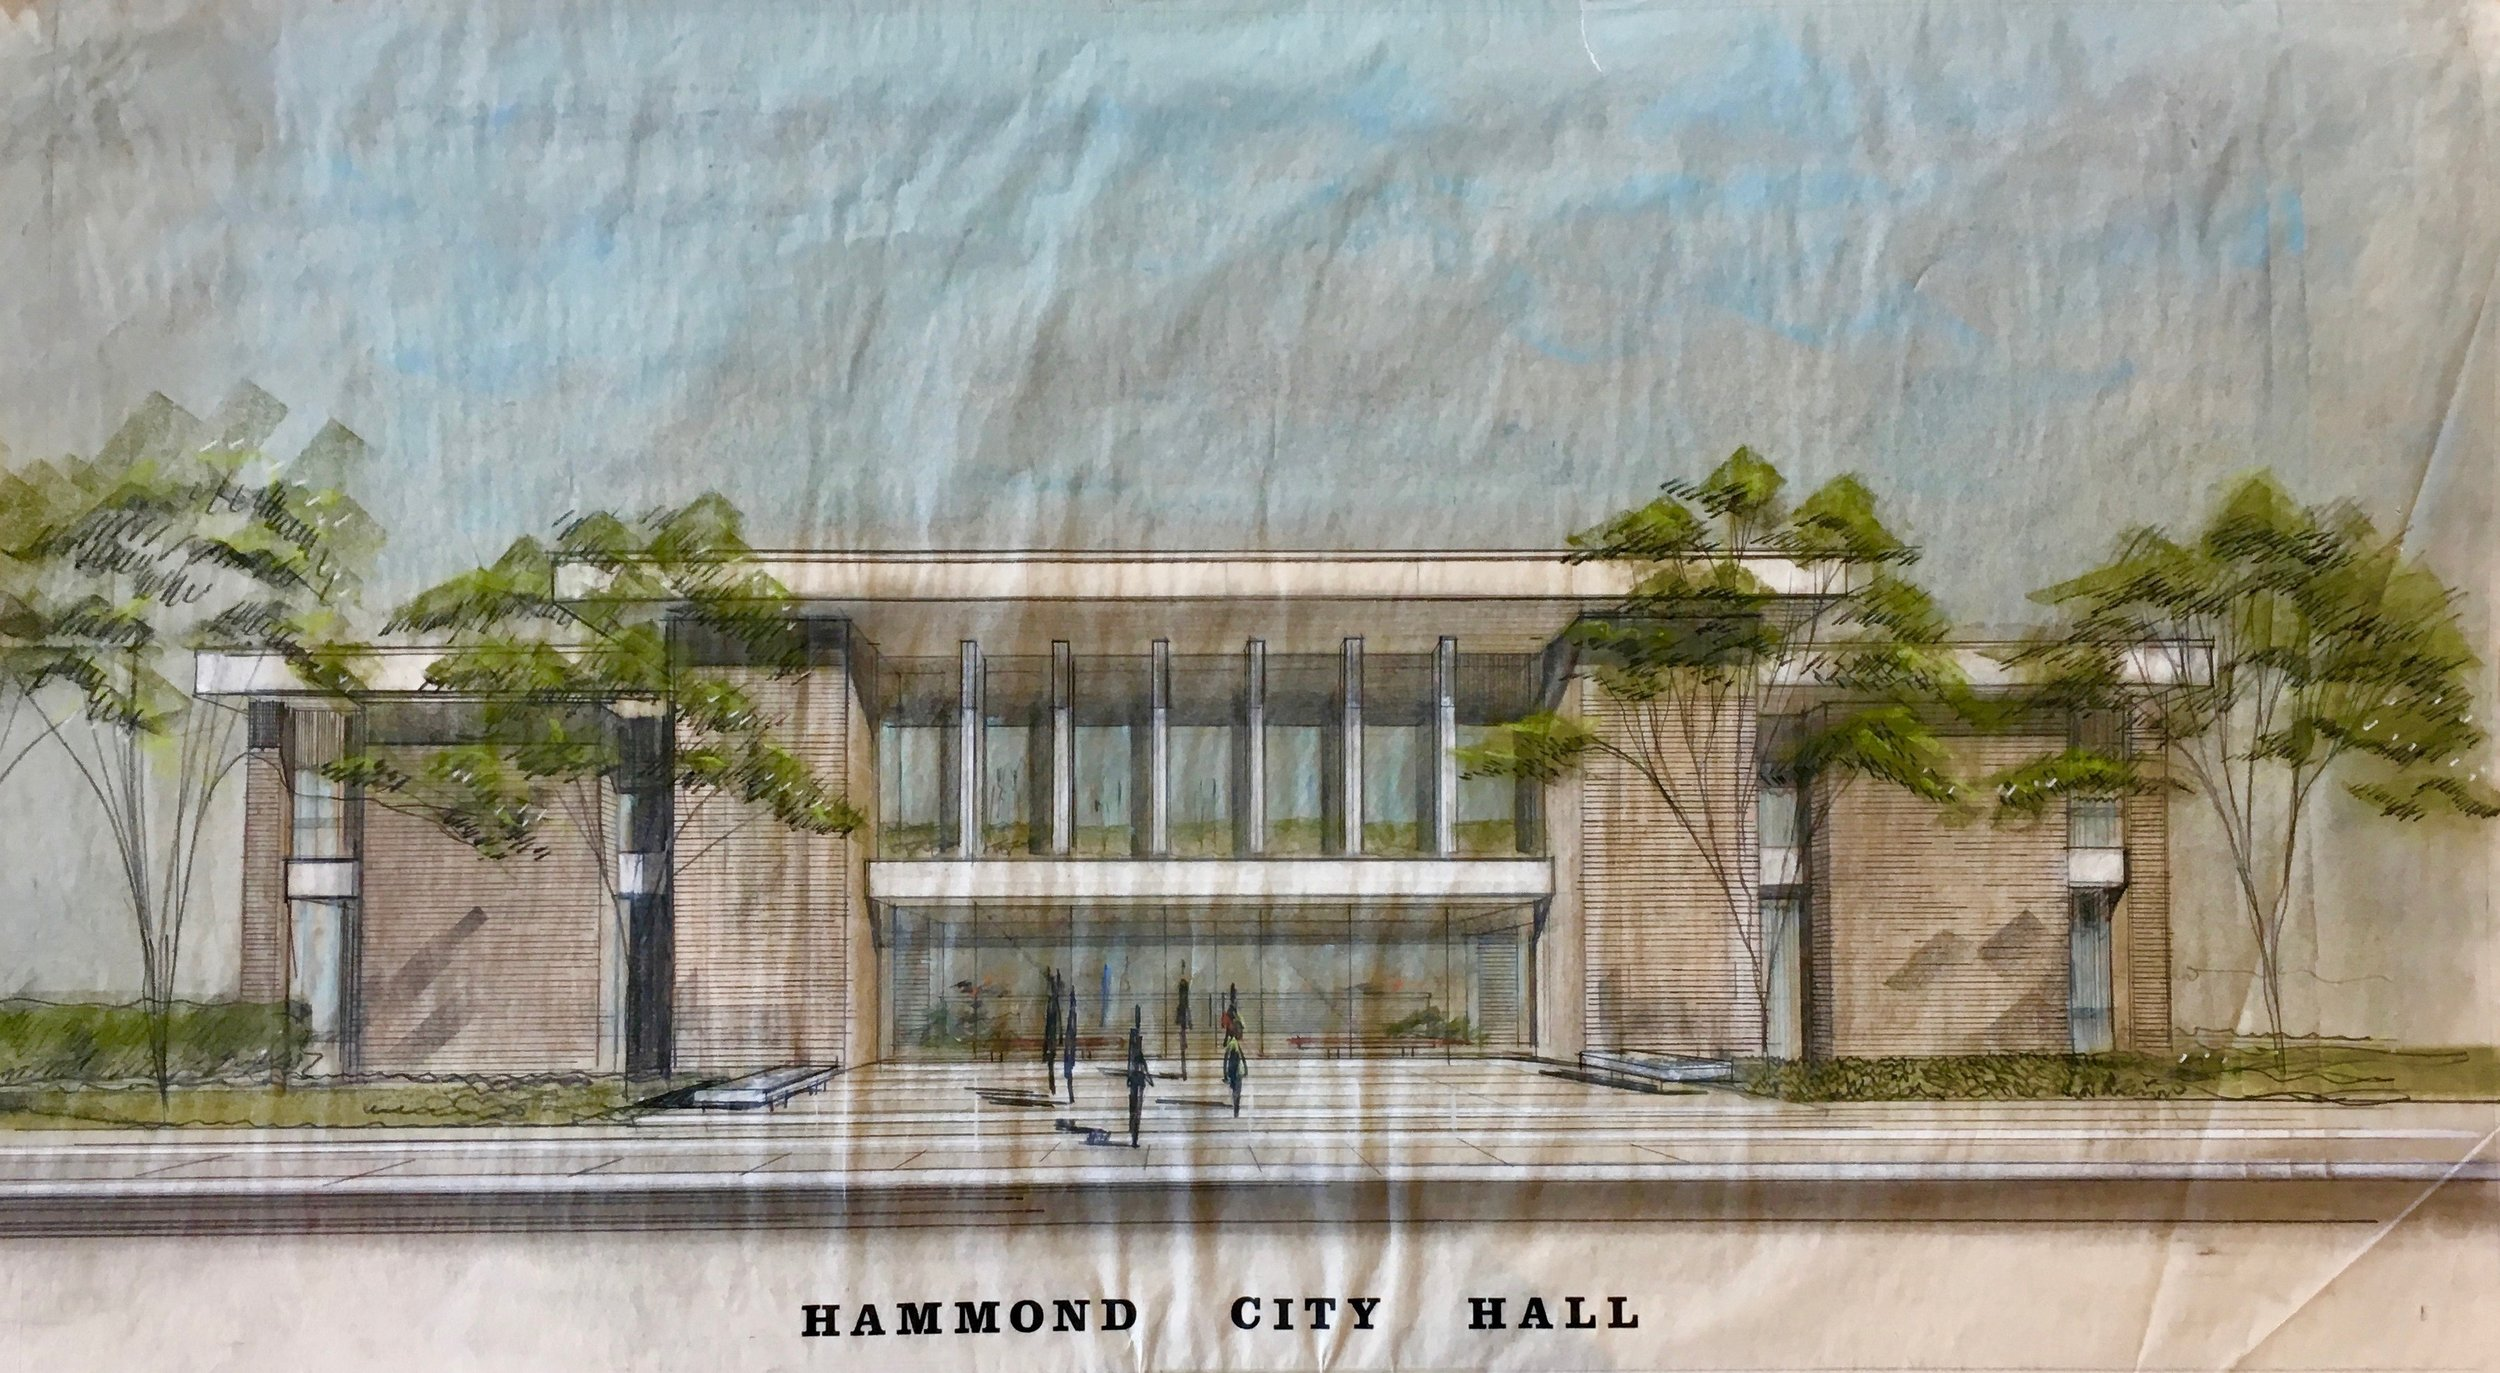 CITY HALL_Desmond_City Hall_Hammond LA_Elevation in Color.jpg